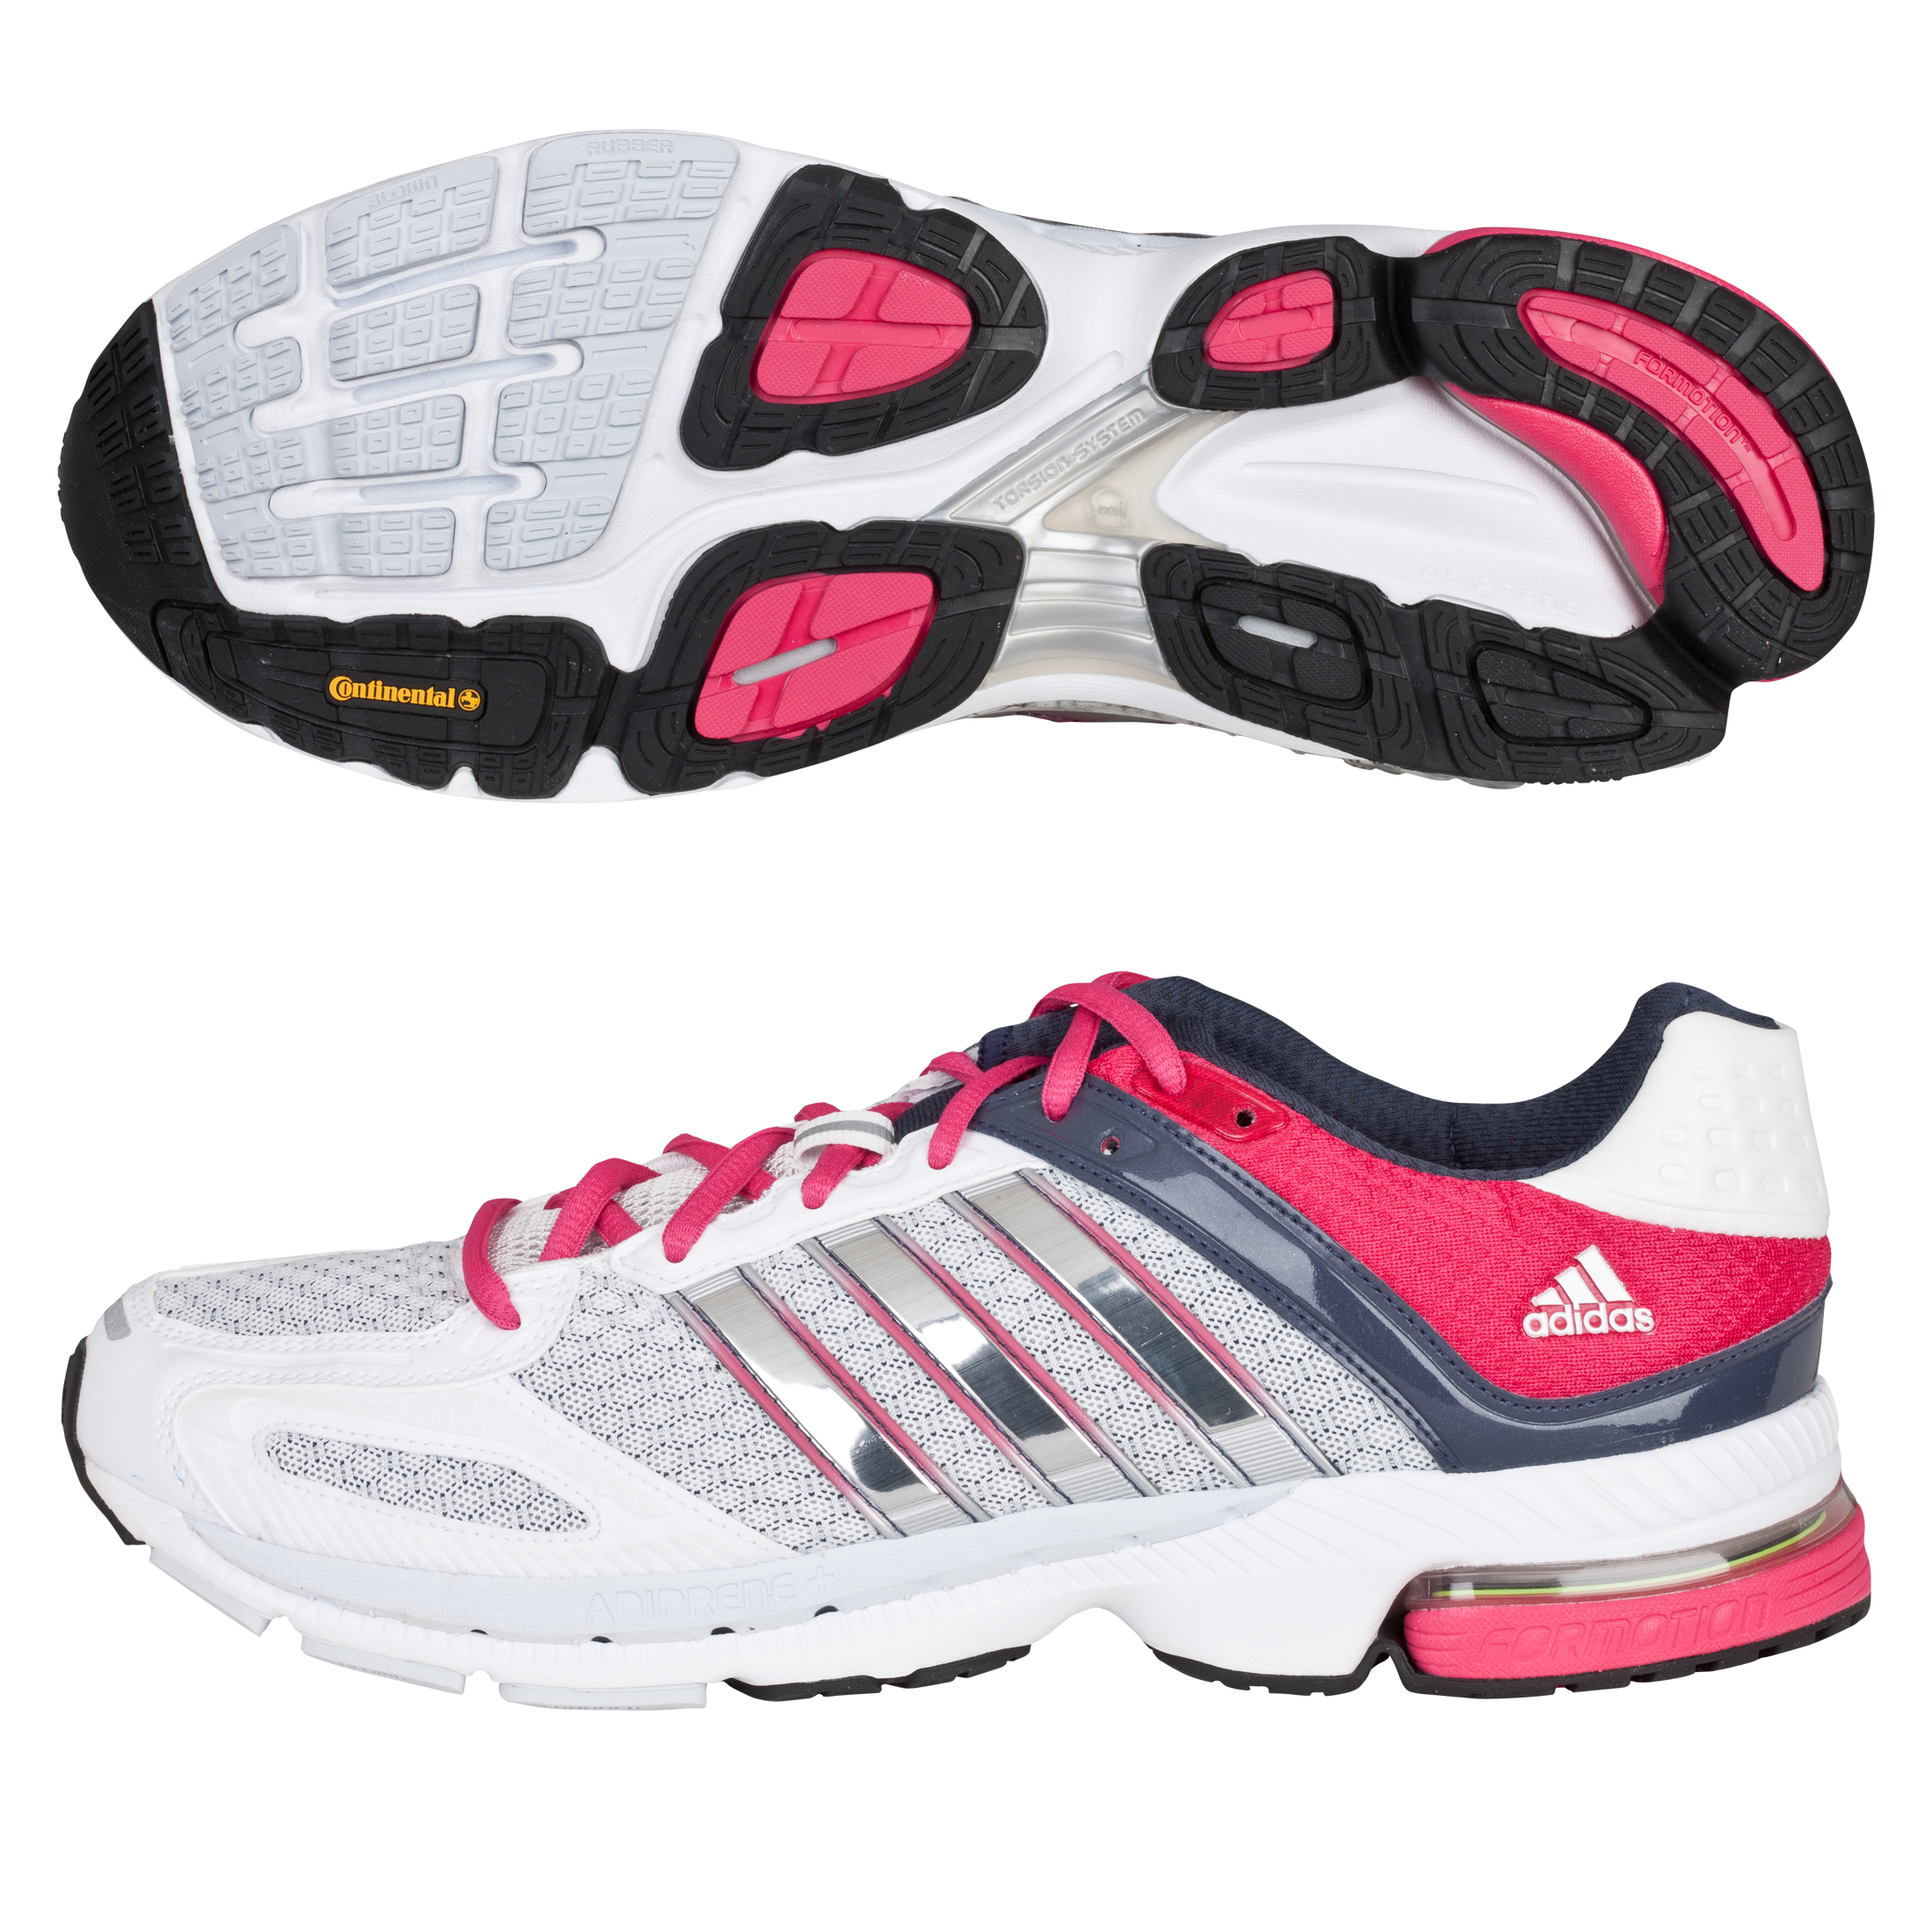 Adidas Snova Seq 5 Running Trainers - Running White/Zero Met/Bright Pink - Womens